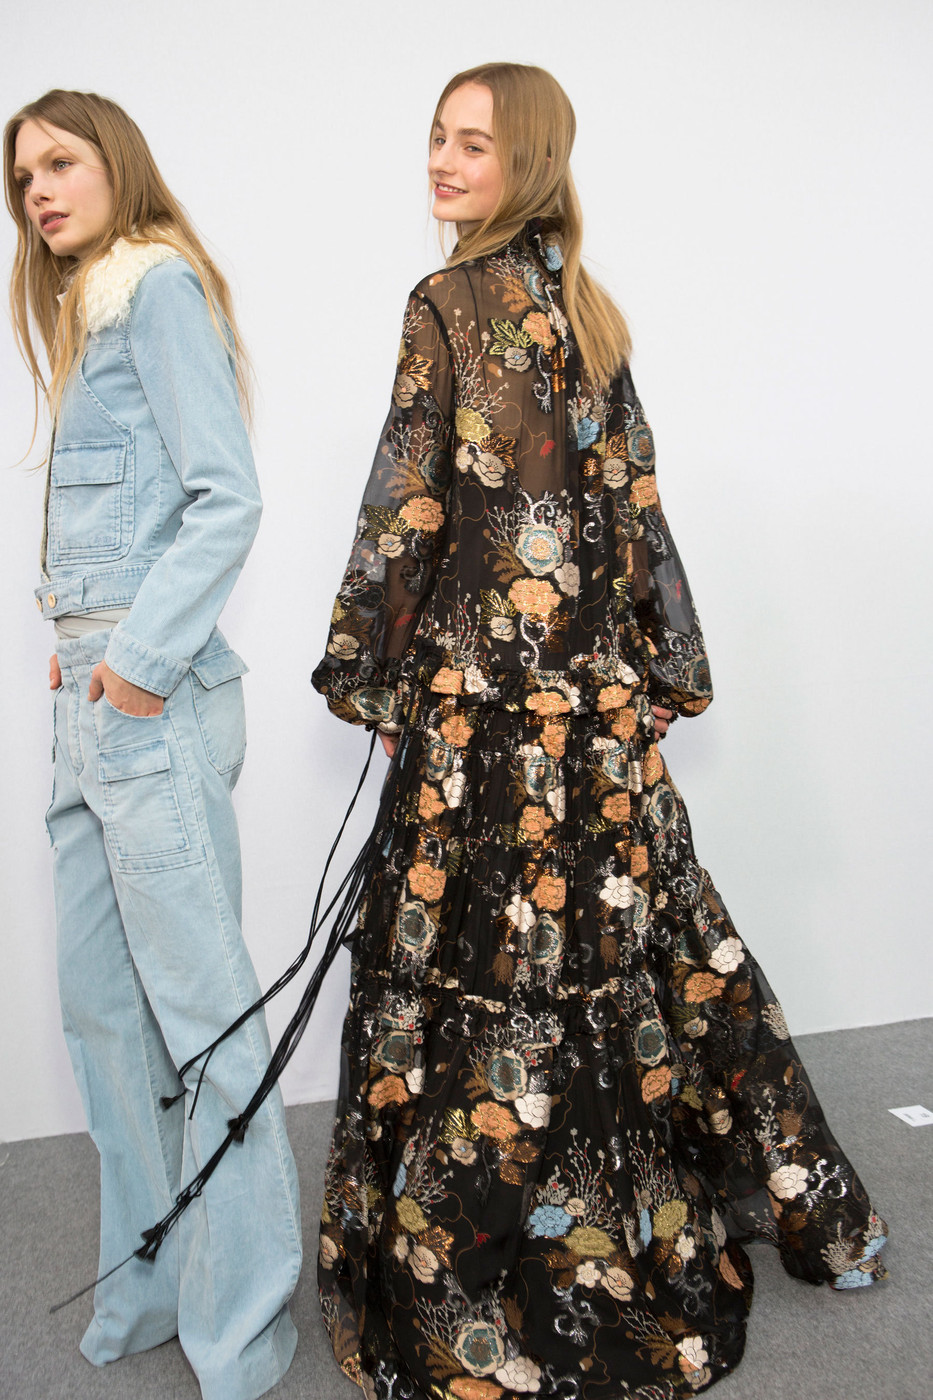 Chloe+Fall+2015+Backstage+0HNGrg9Mc29x.jpg